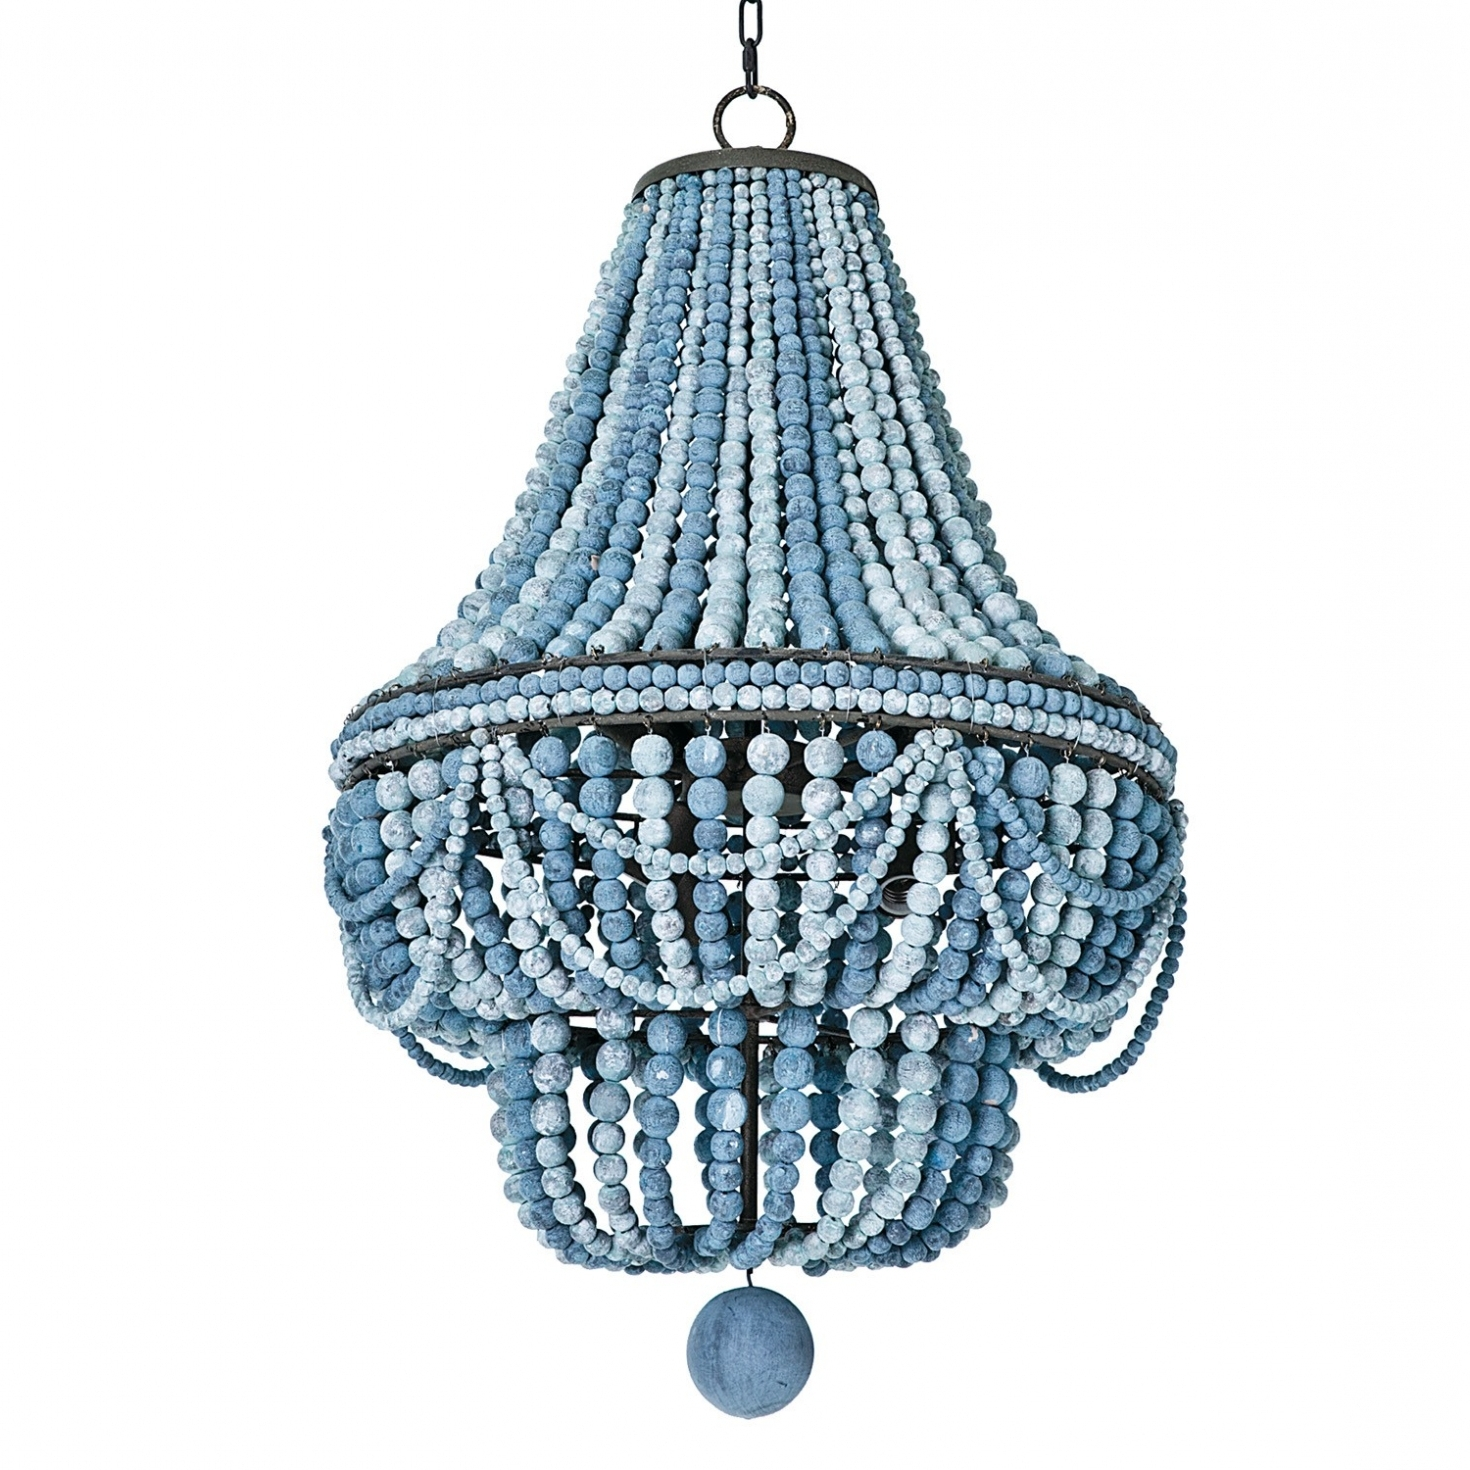 2018 Lighting ~ Chandeliers ~ Turquoise Beaded Chandelier Light Fixture Pertaining To Turquoise Wood Bead Chandeliers (View 4 of 15)